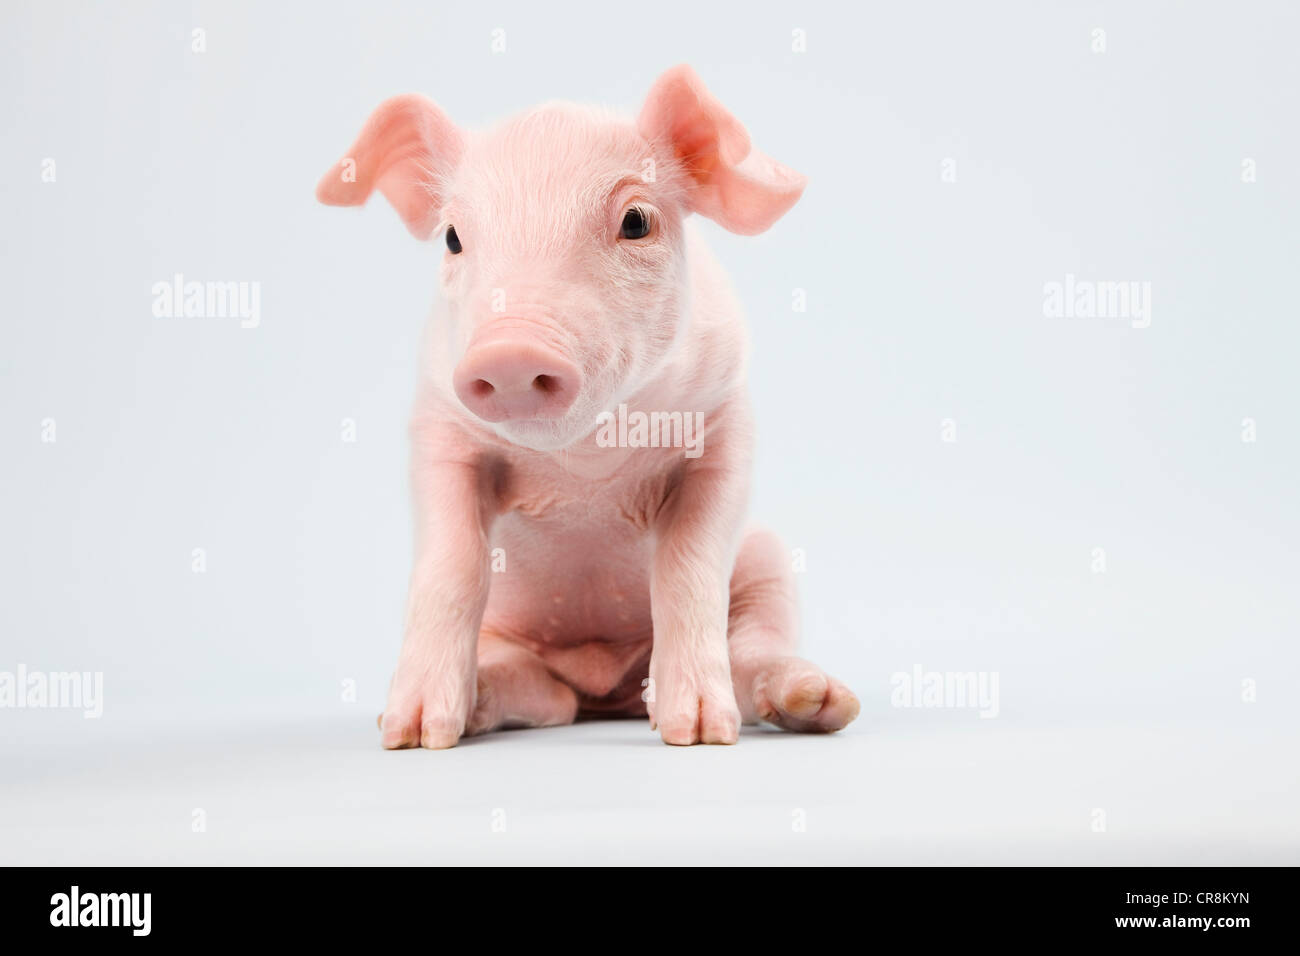 Cute piglet, studio shot - Stock Image